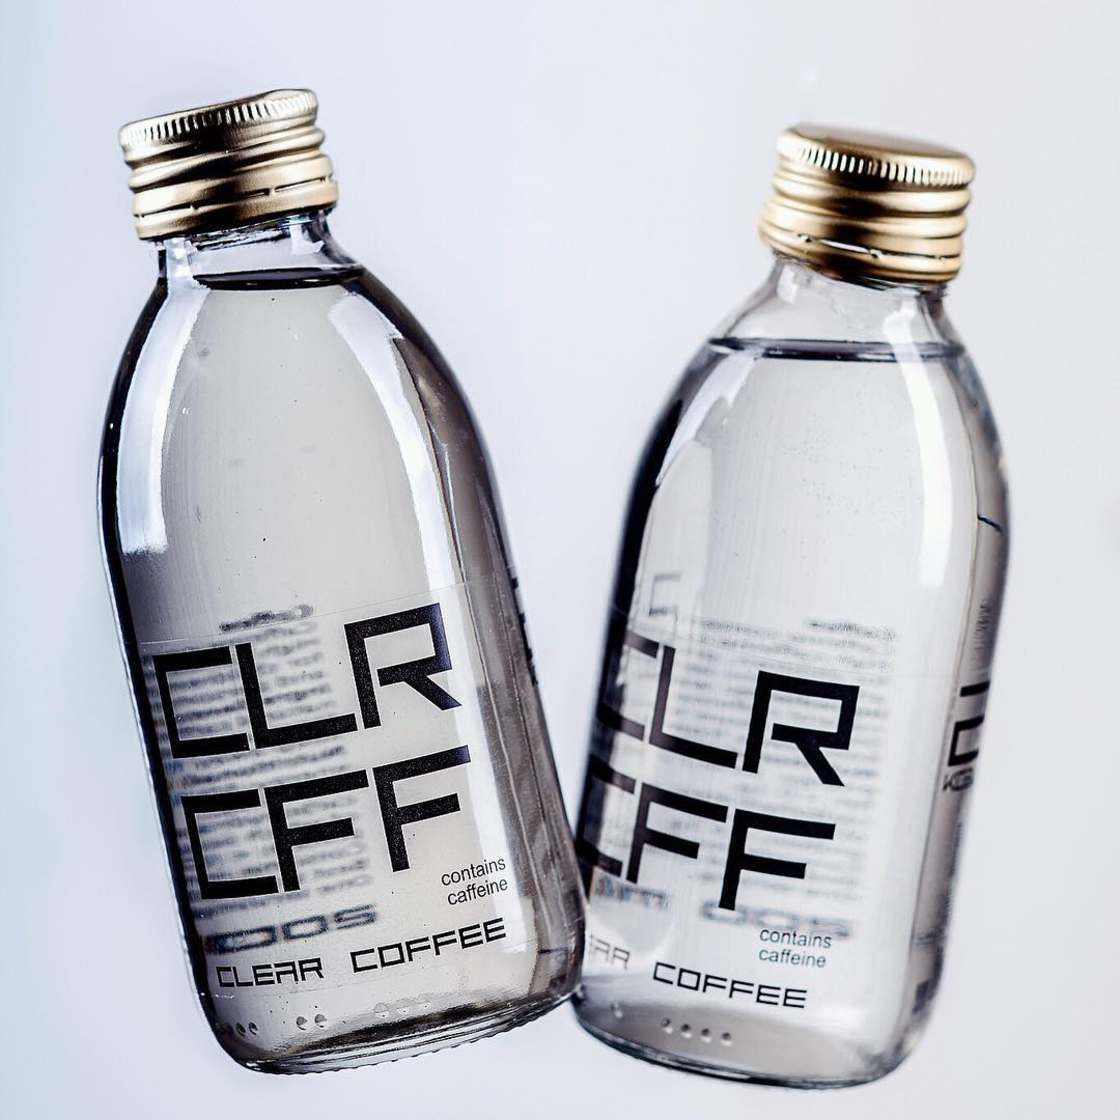 Clear Coffee – They launch a transparent coffee! (14 pics)